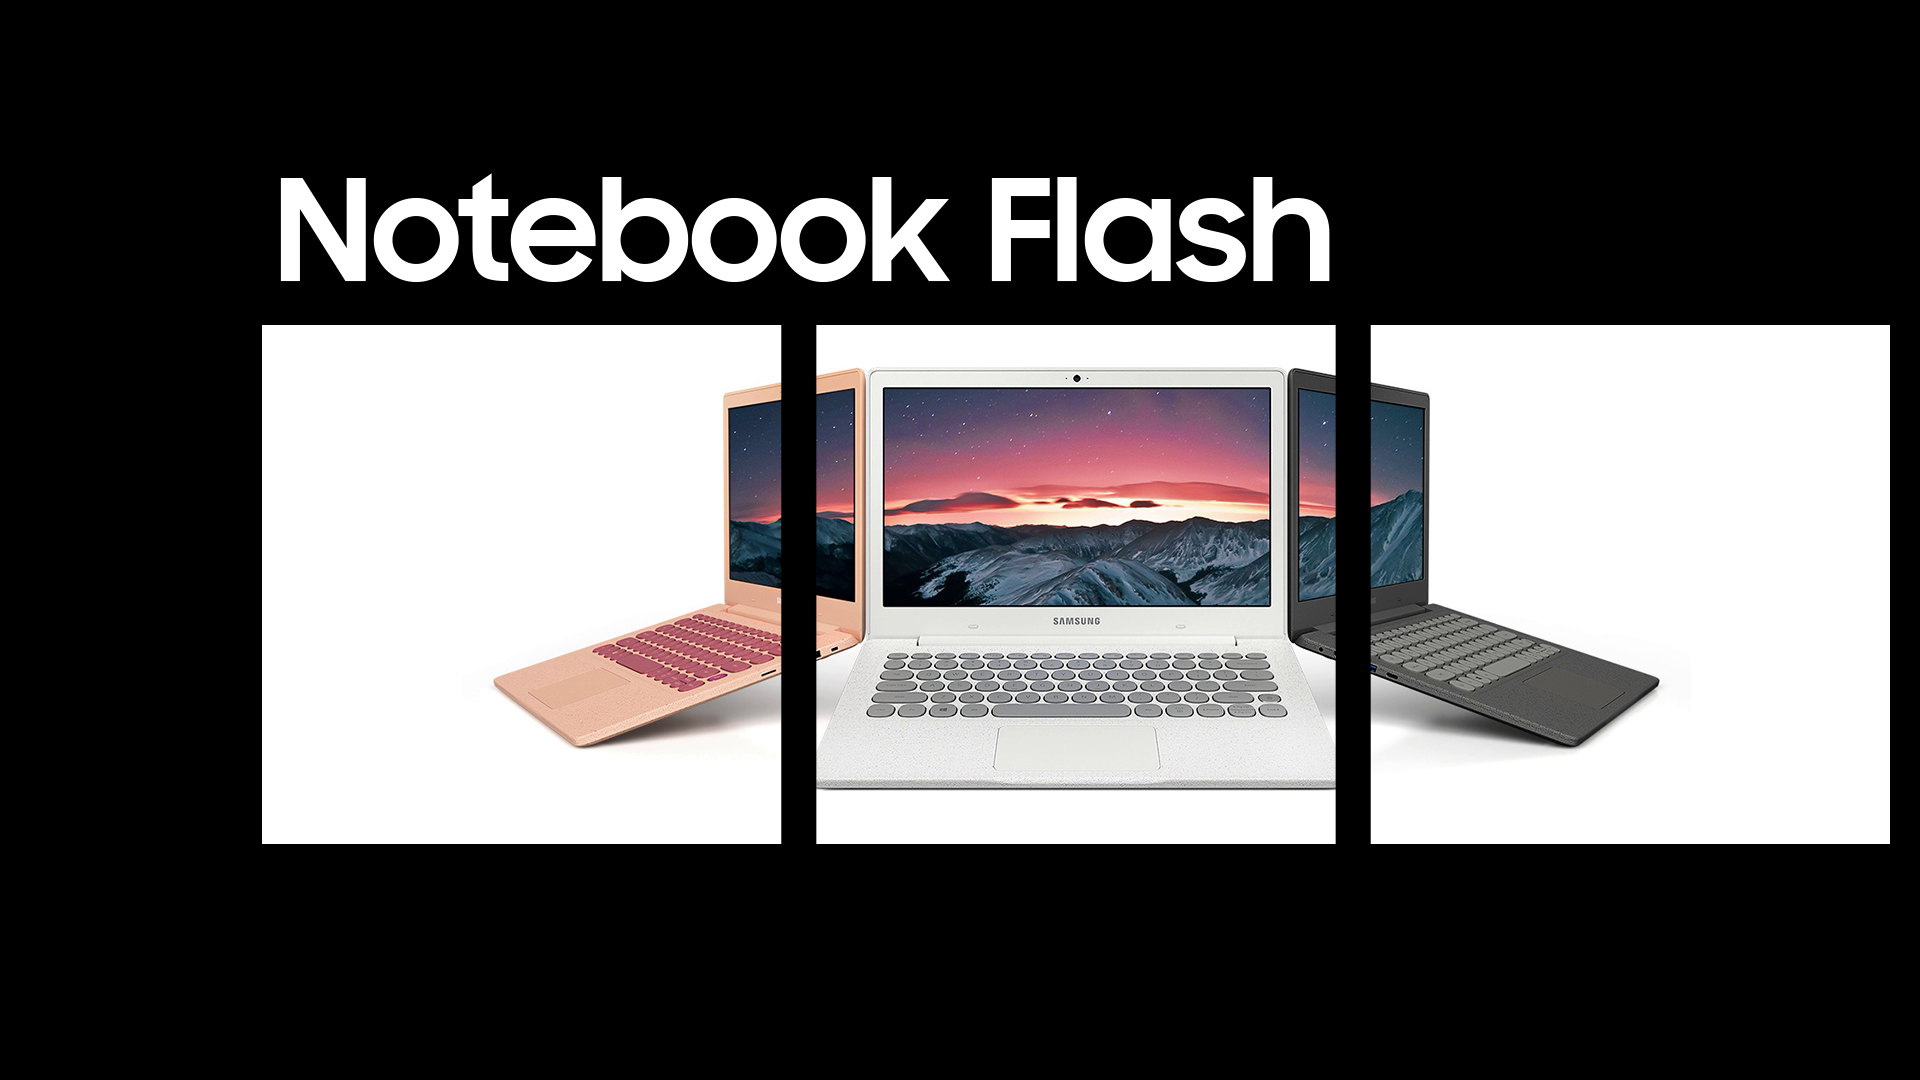 Prêmio Marketing Best 2019: Samsung Galaxy A e Samsung Notebook Flash